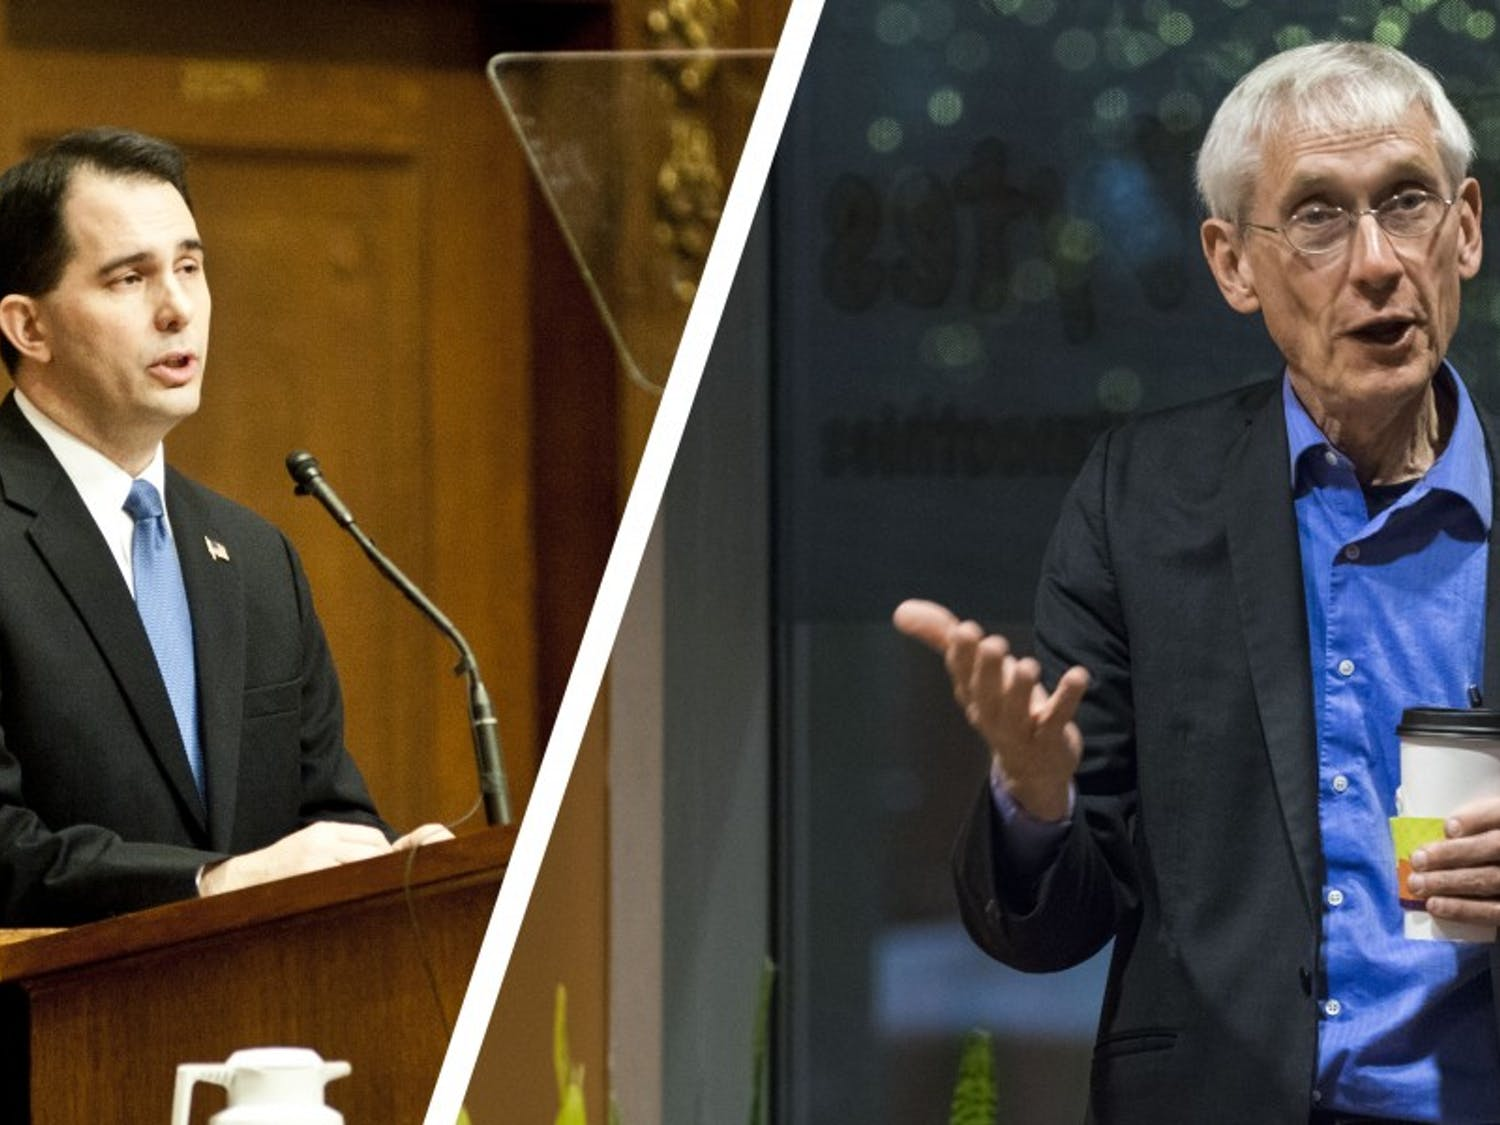 Republican Gov. Scott Walker and Democratic state superintendent Tony Evers went head-to-head in the last debate prior to next Tuesday's midterm election.